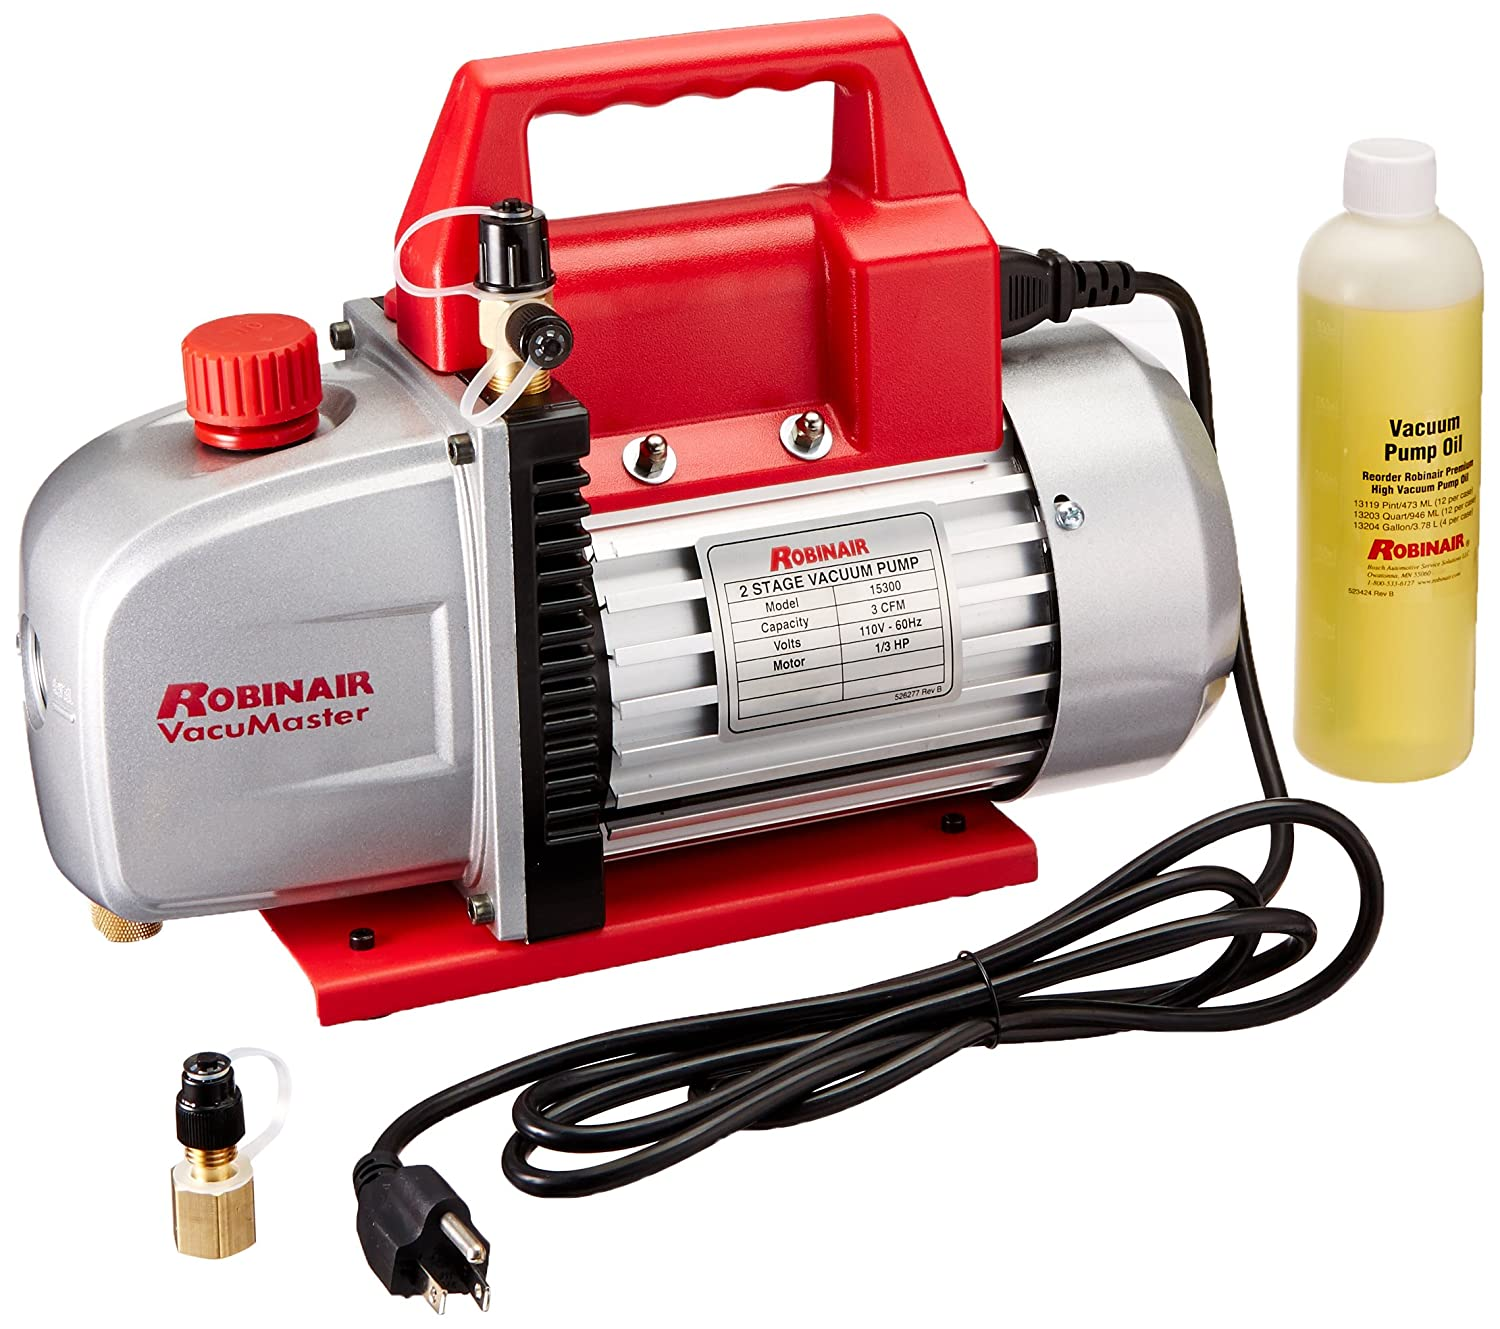 81Z%2BZYwXrdL._SL1500_ amazon com robinair (15300) vacumaster economy vacuum pump 2 Robinair 15500 Parts Breakdown at n-0.co